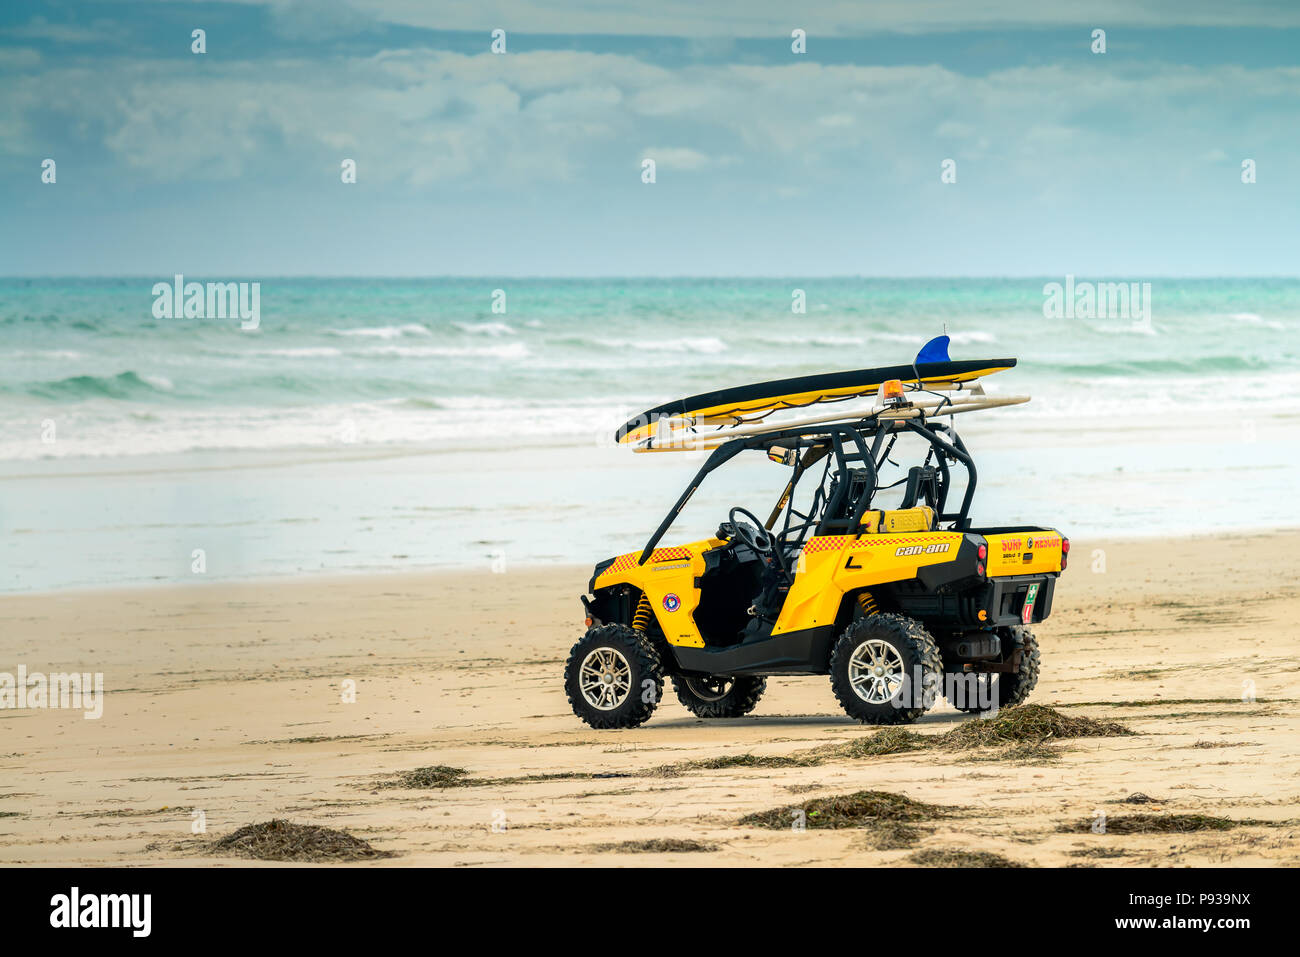 Adelaide, Australia - February 18, 2017: Australian surf life saving rescue car parked on the shore of  Sellicks Beach on a stormy day - Stock Image